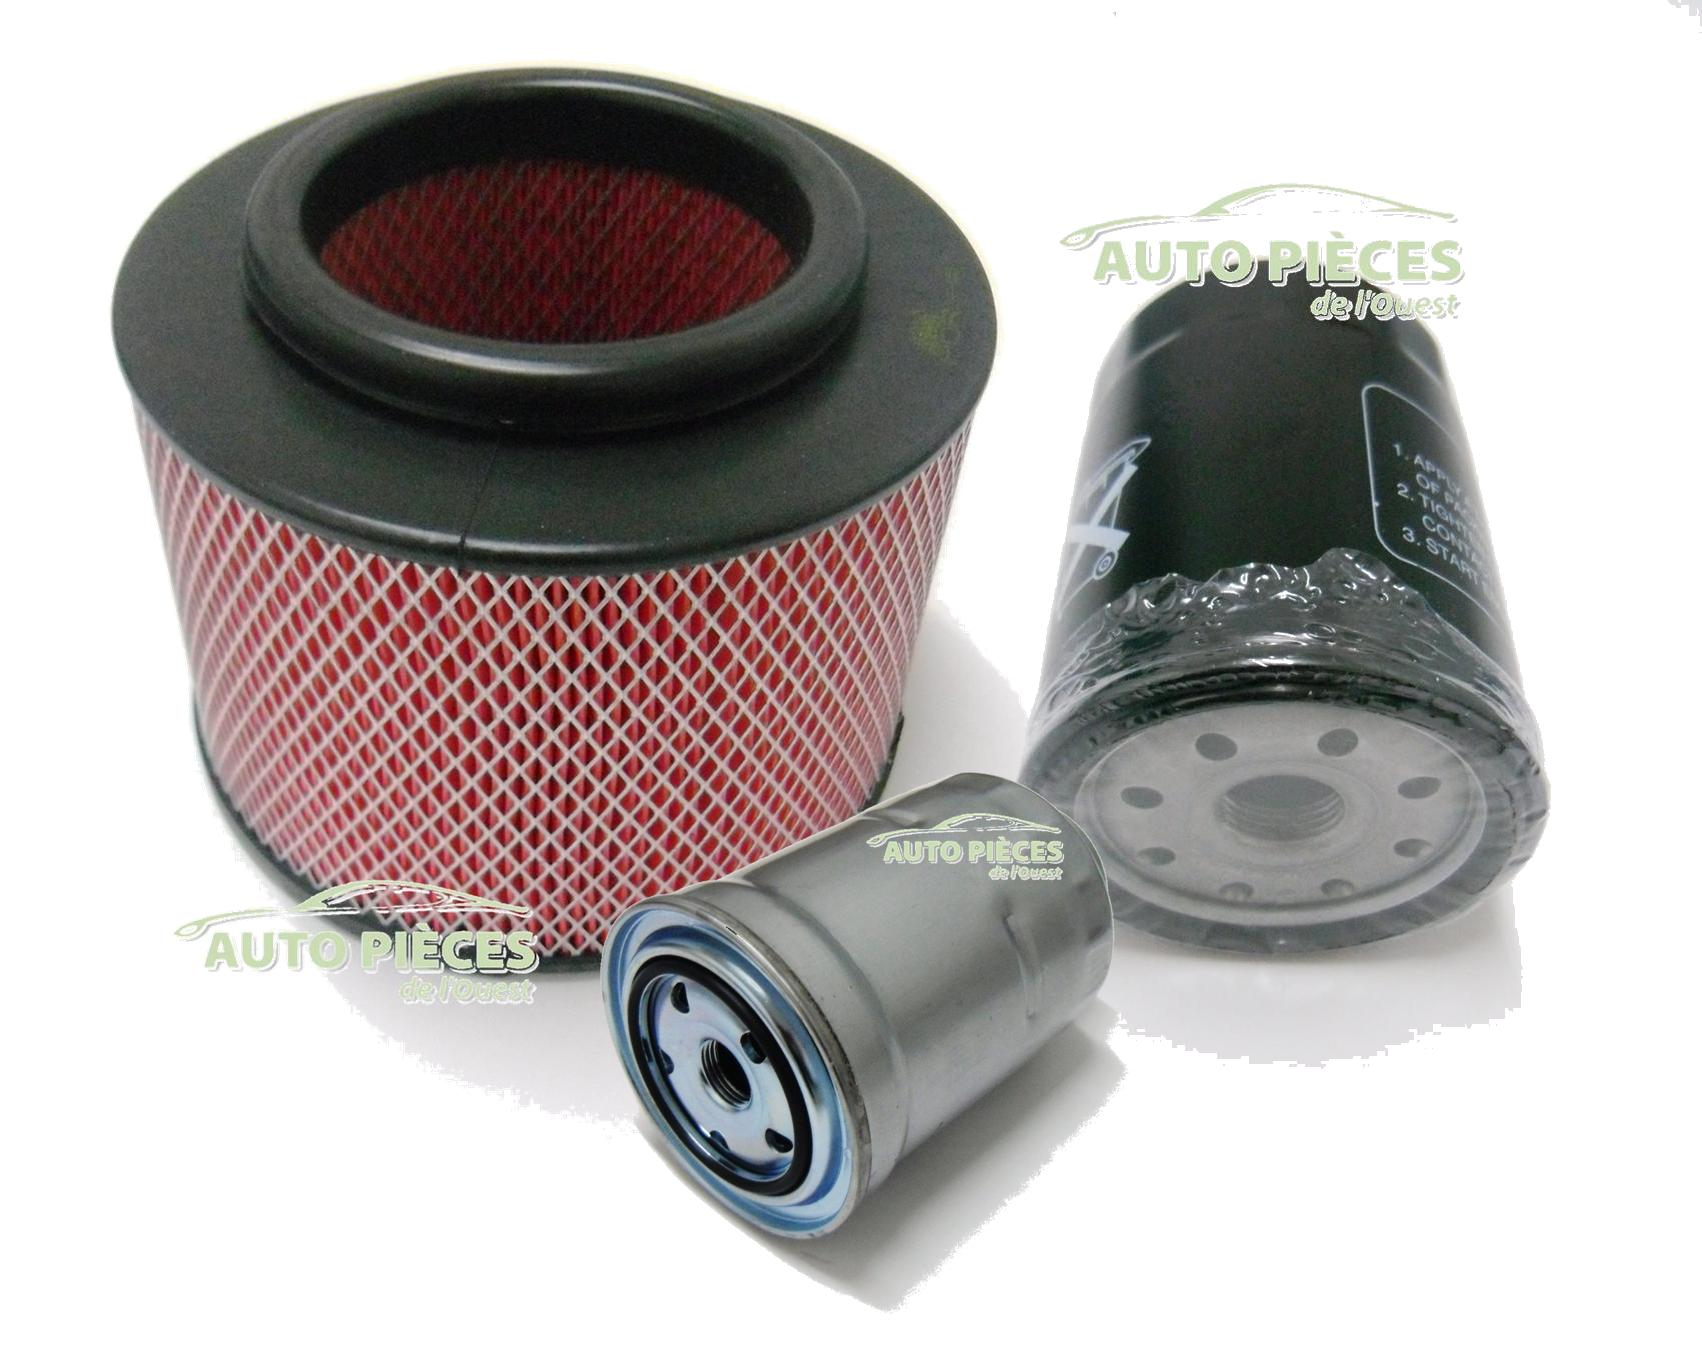 huile voiture huile voiture sur enperdresonlapin. Black Bedroom Furniture Sets. Home Design Ideas